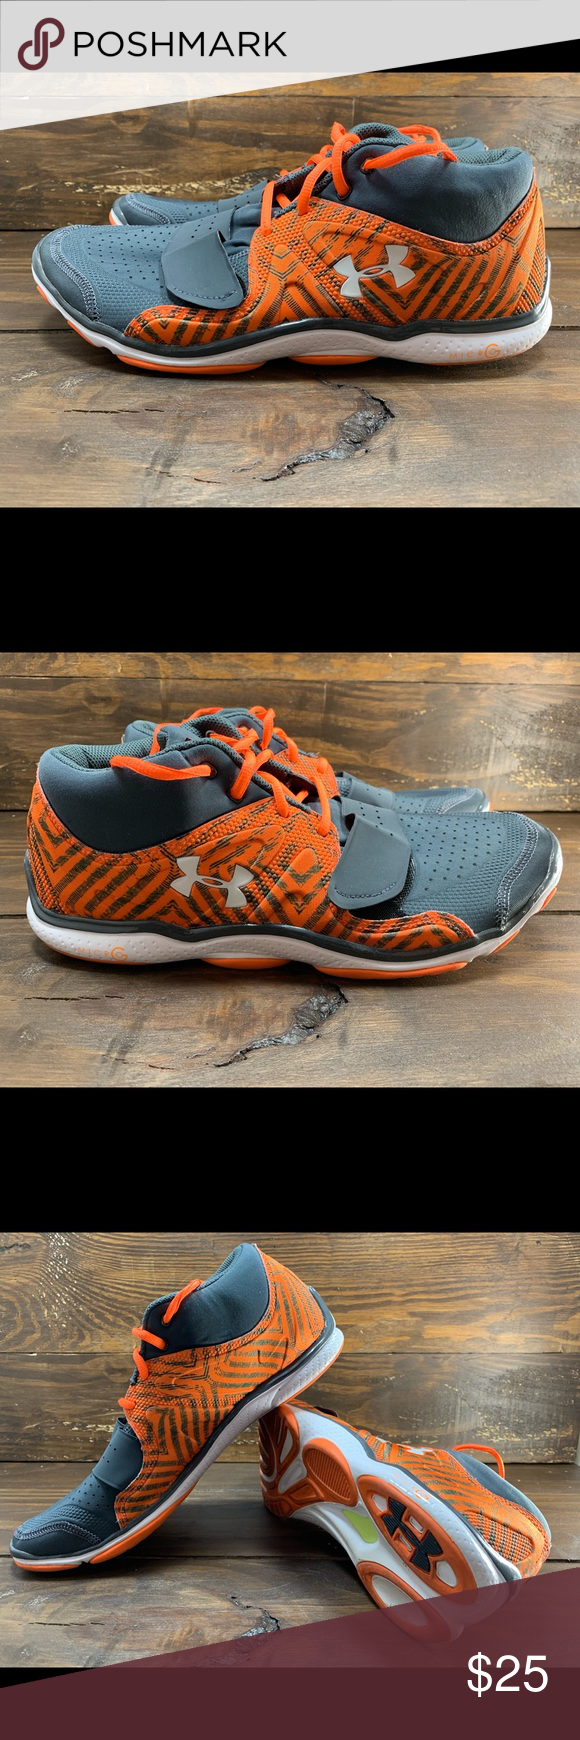 Under Armour Micro G Men's Running Shoe Slightly used (worn